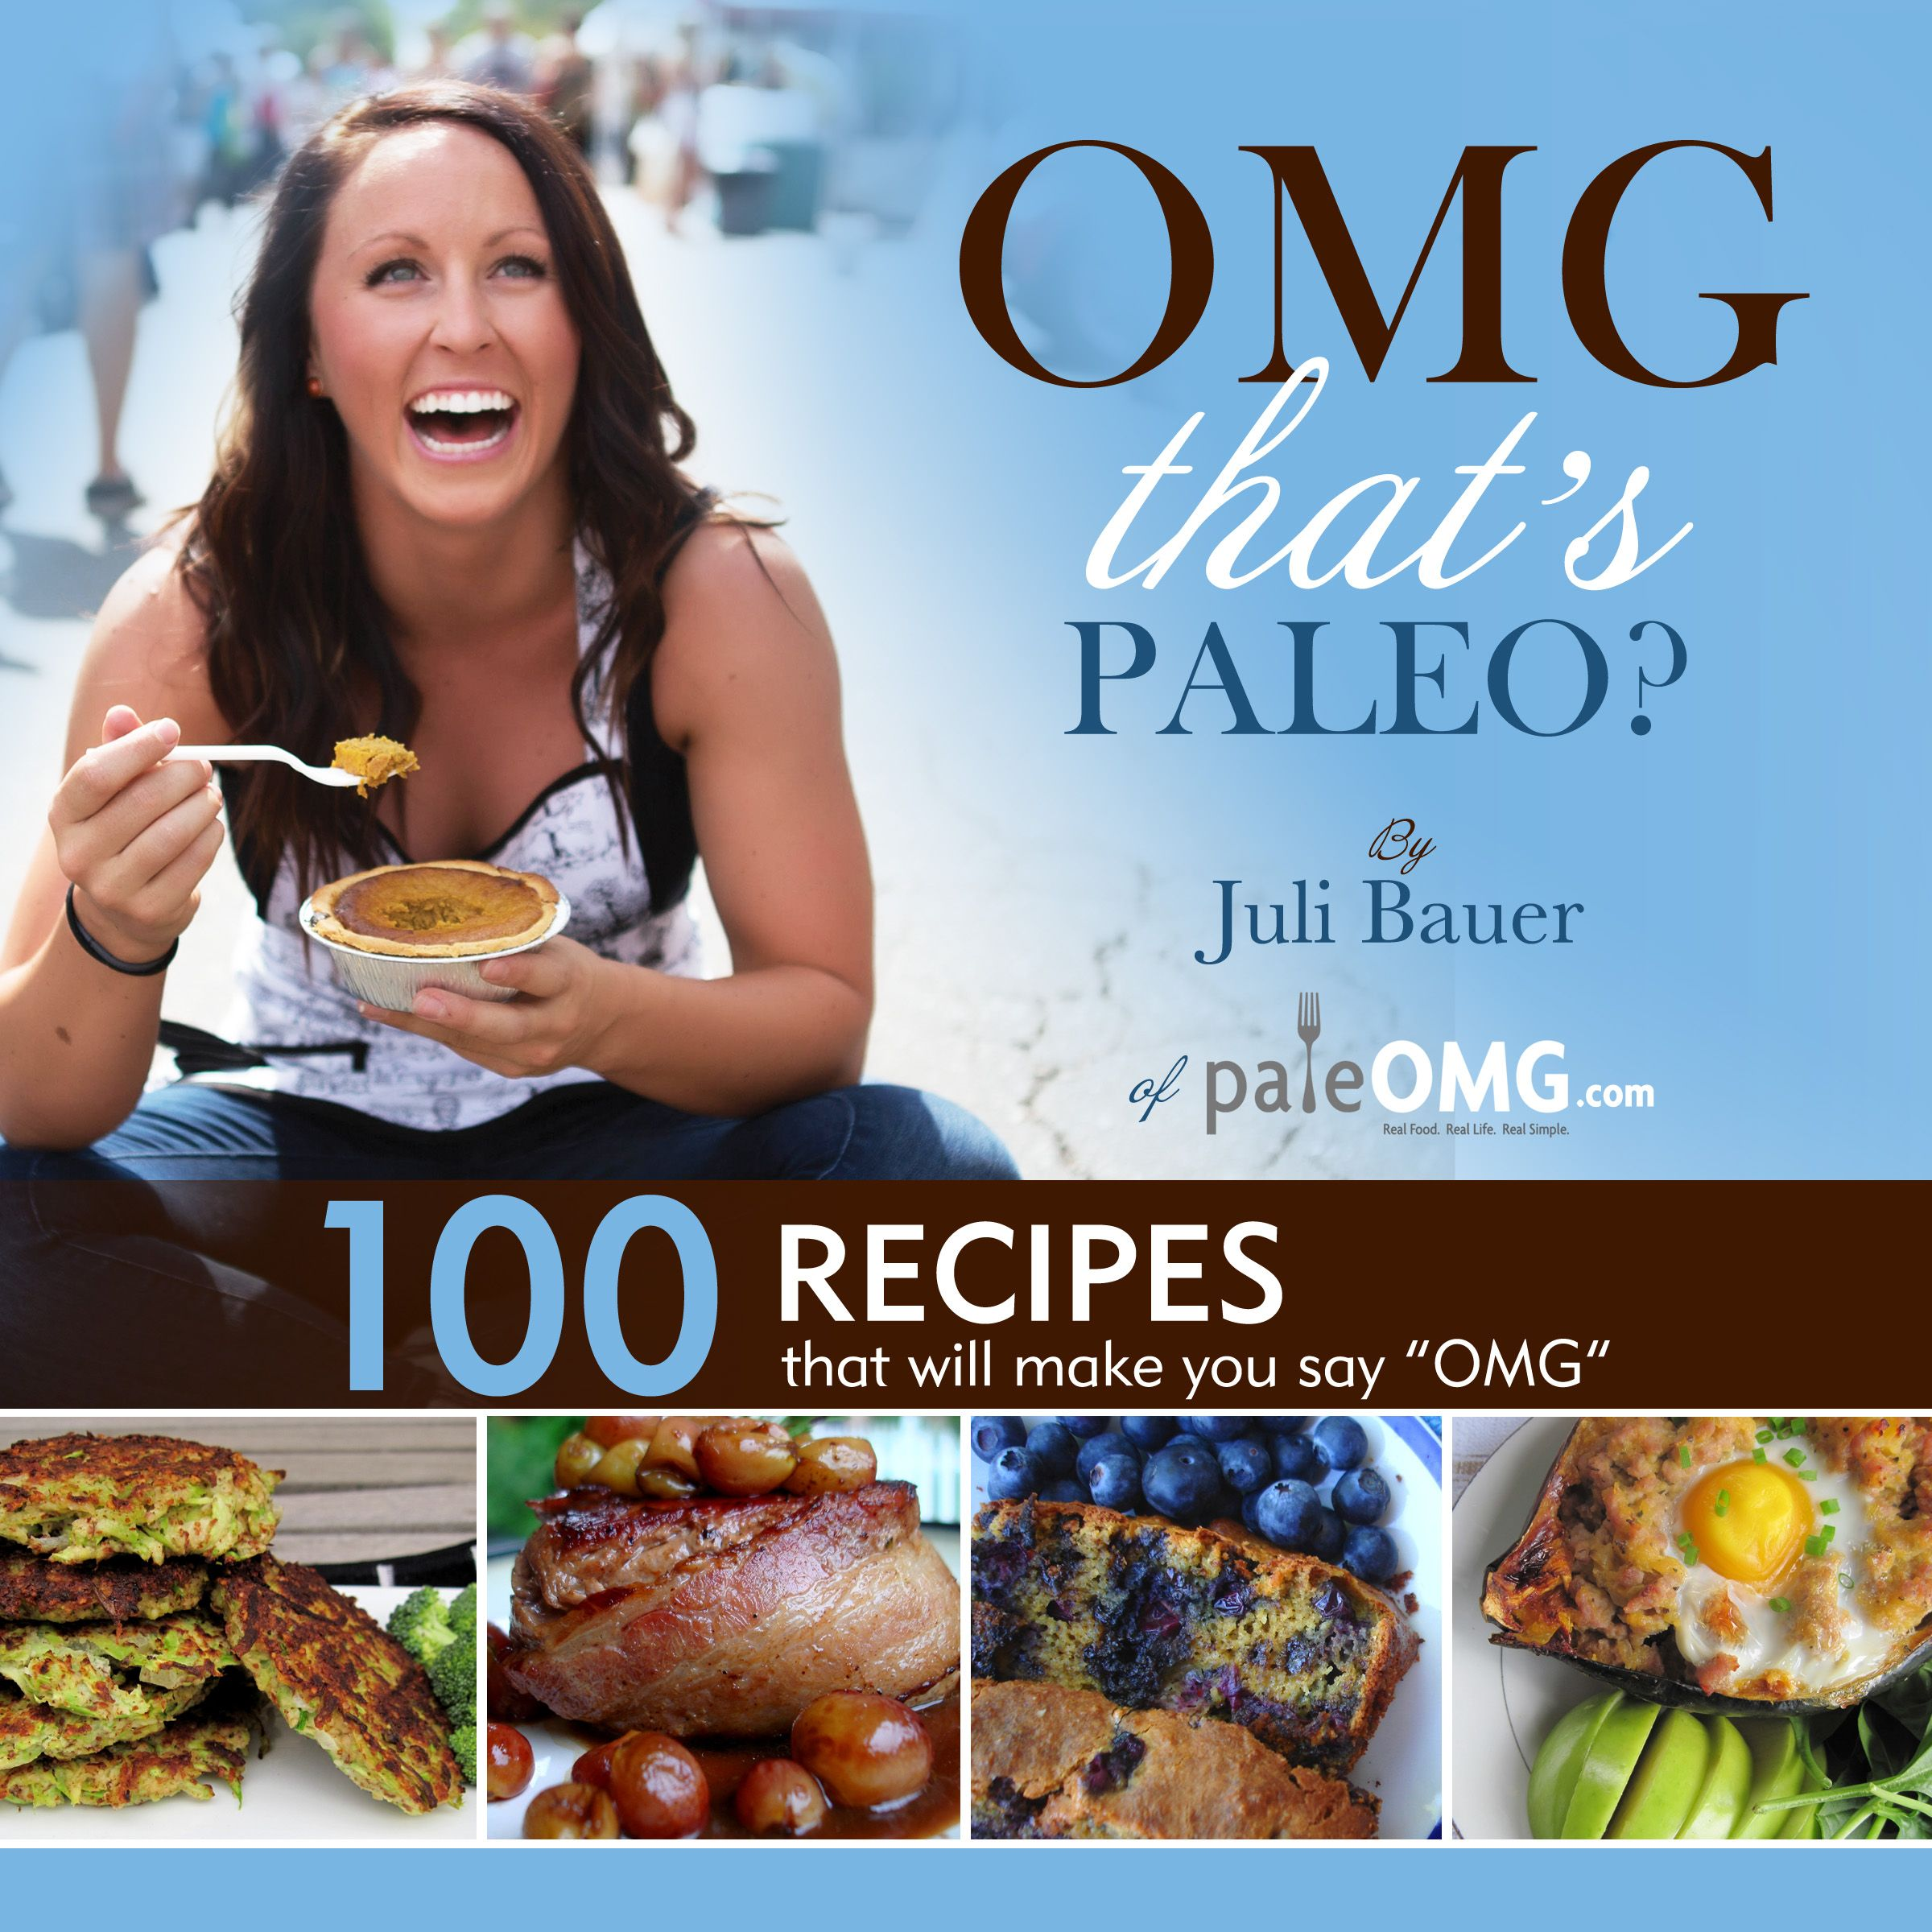 Paleo Küche Danielle Walker Strawberry Banana Chocolate Chip Muffins Recipe Yummmm Paleo